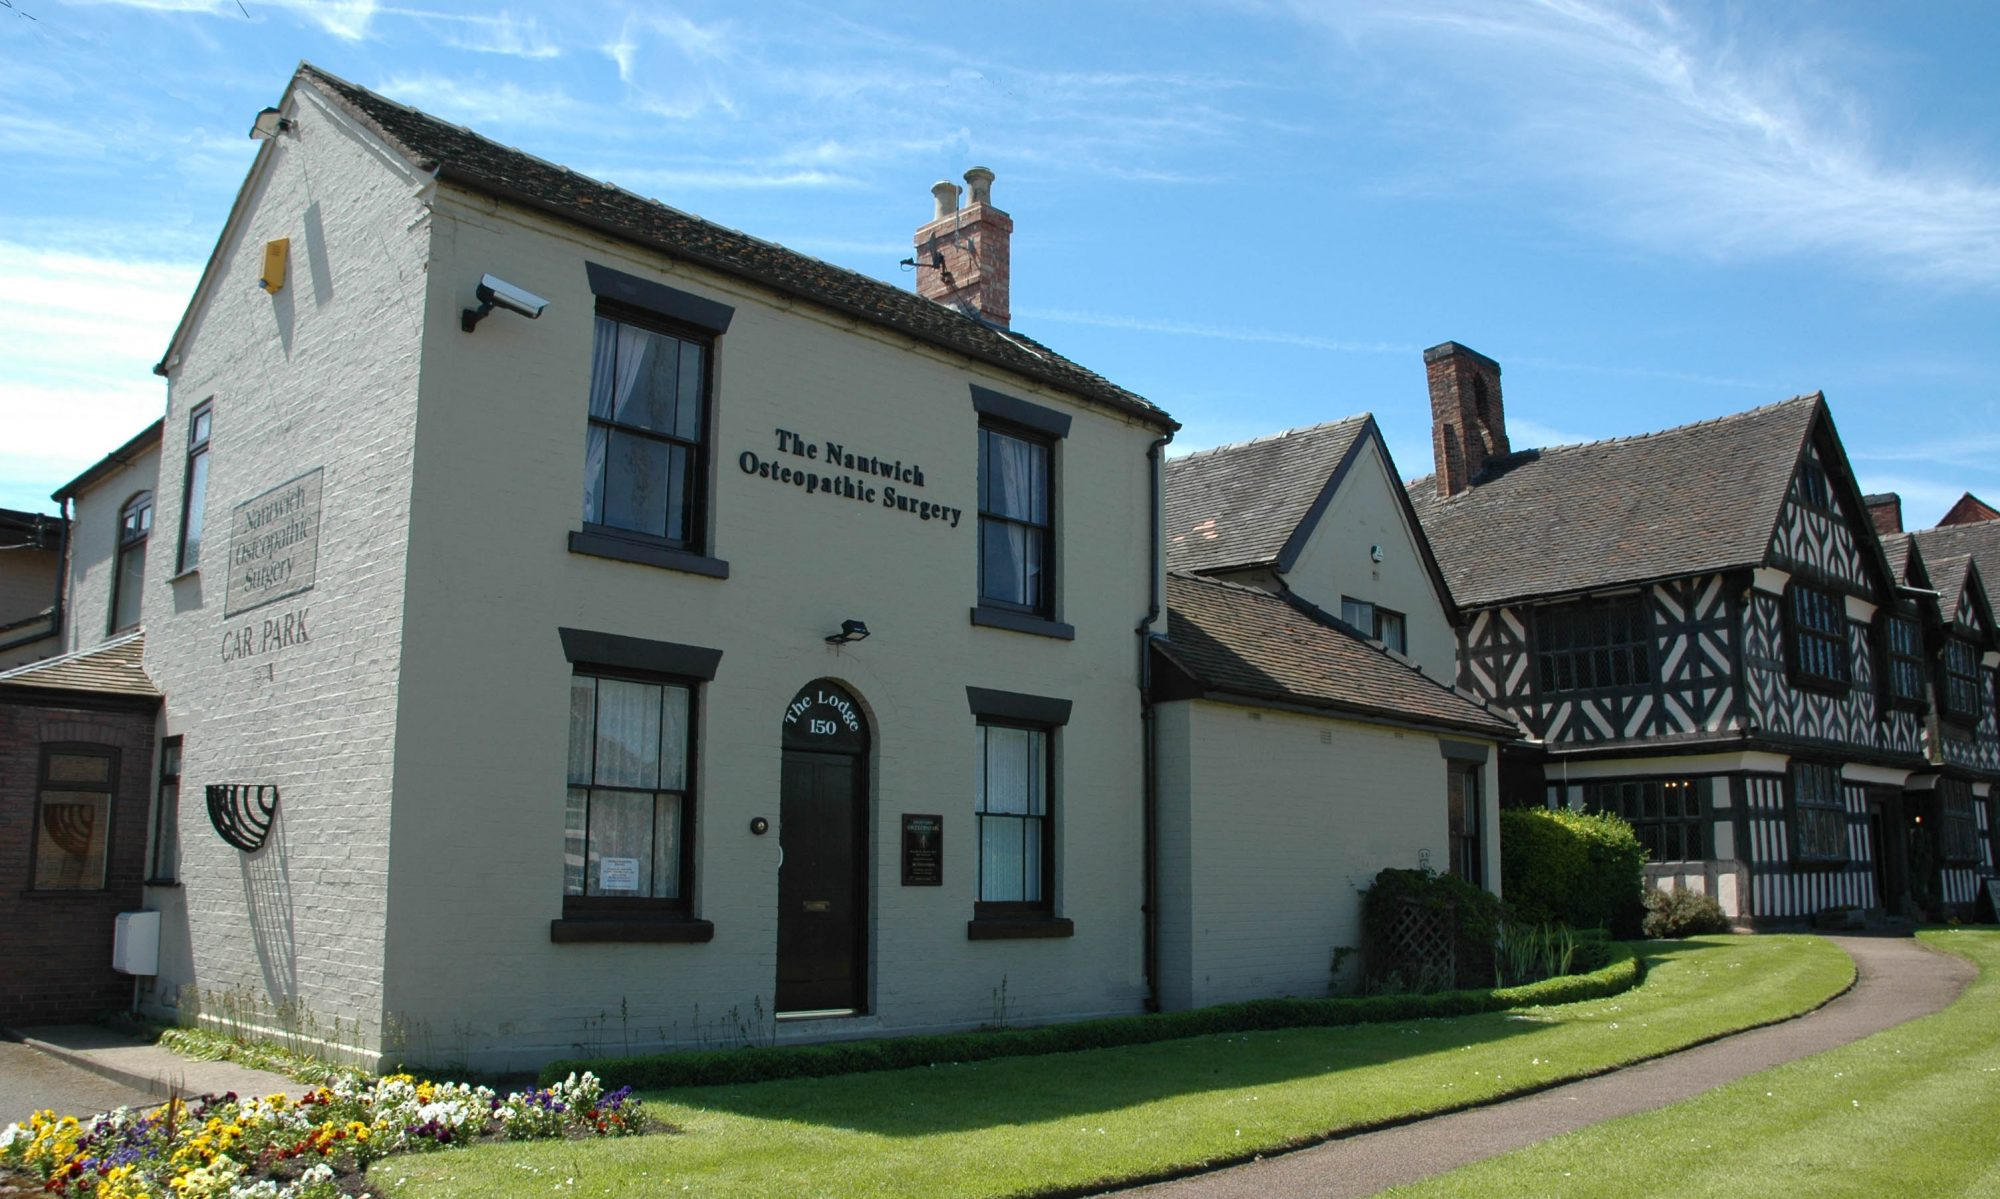 Nantwich Osteopaths and Physiotherapy Surgery